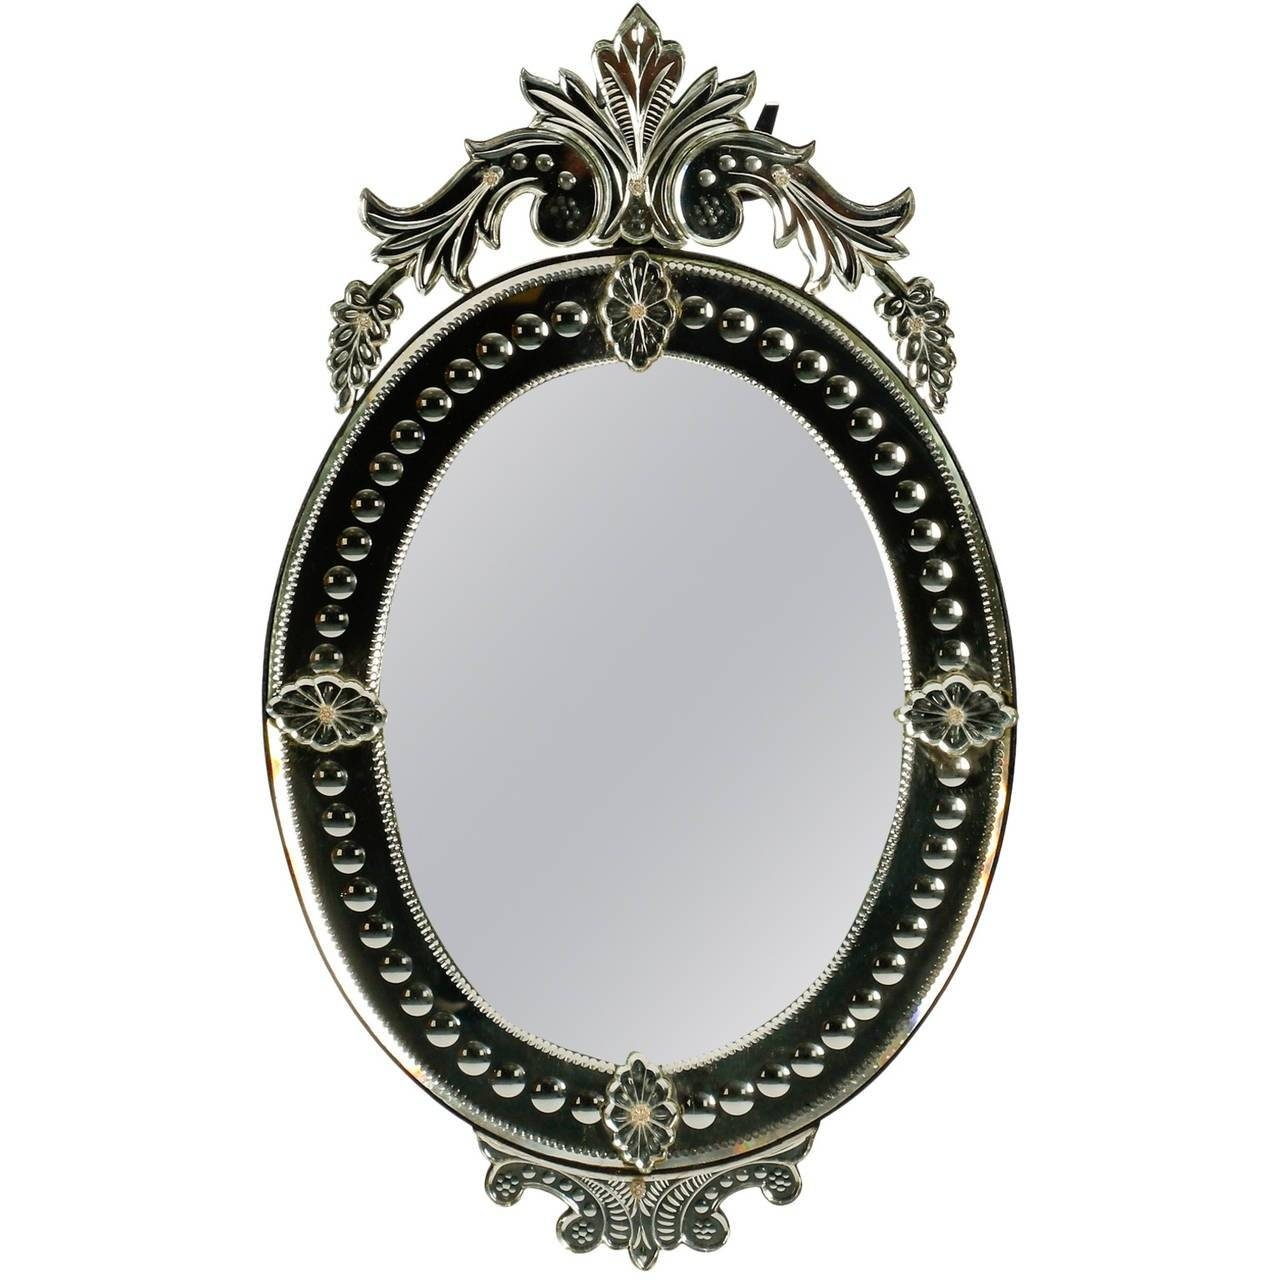 Oval Venetian Mirror With Crown At 1stdibs Intended For Venetian Oval Mirrors (View 5 of 15)